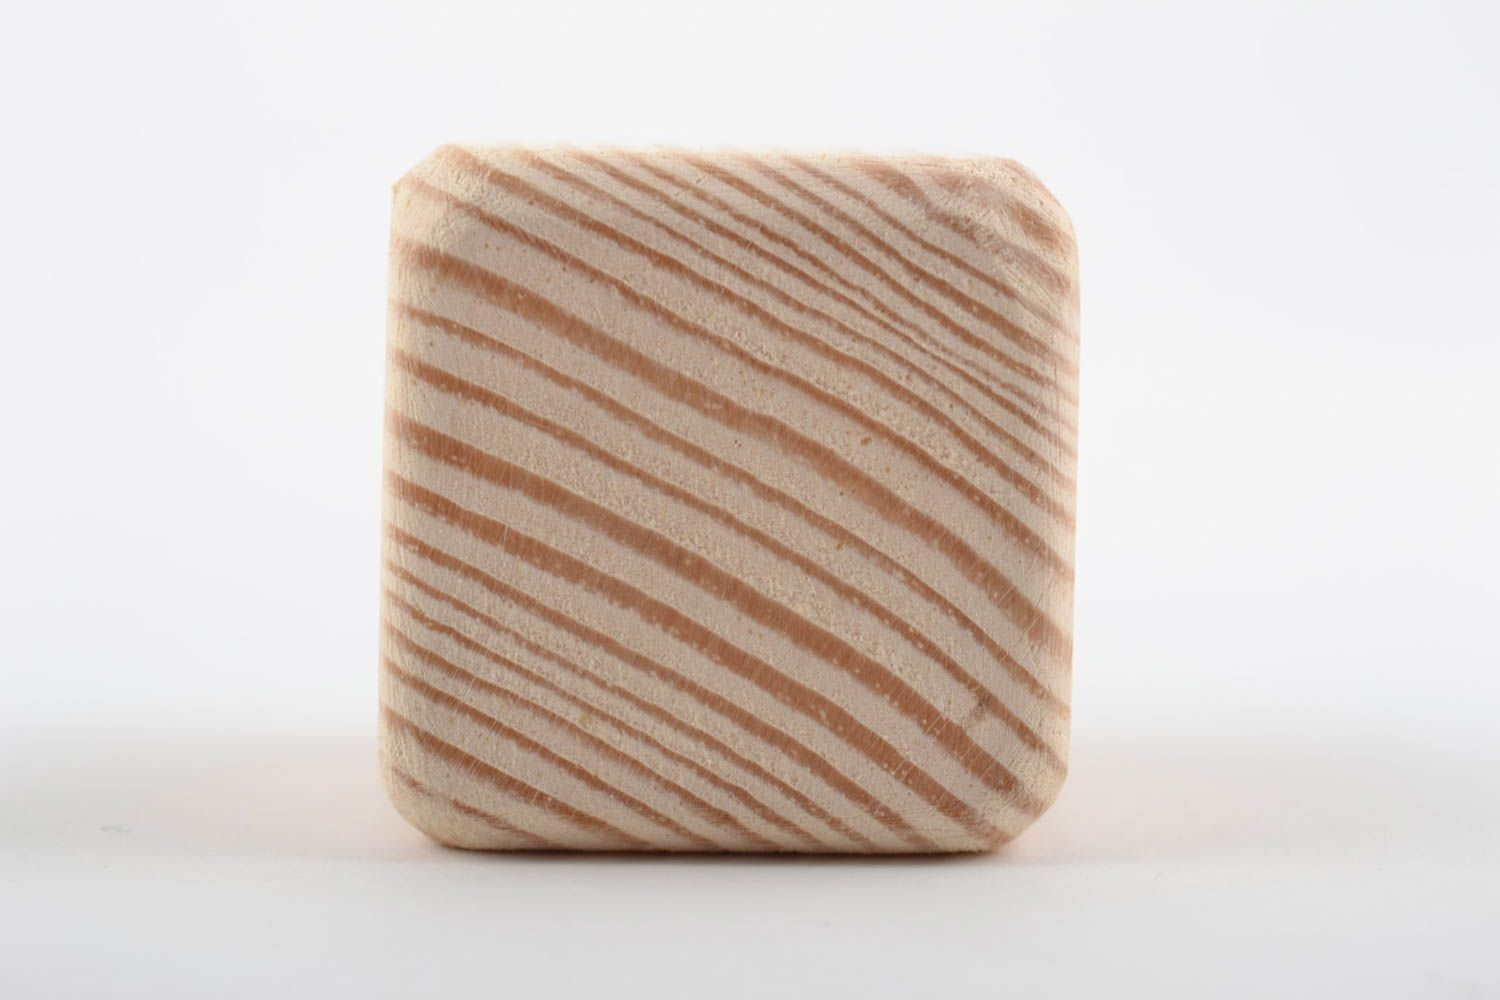 Handmade small pine wood craft blank for decoration cube toy art supplies photo 5